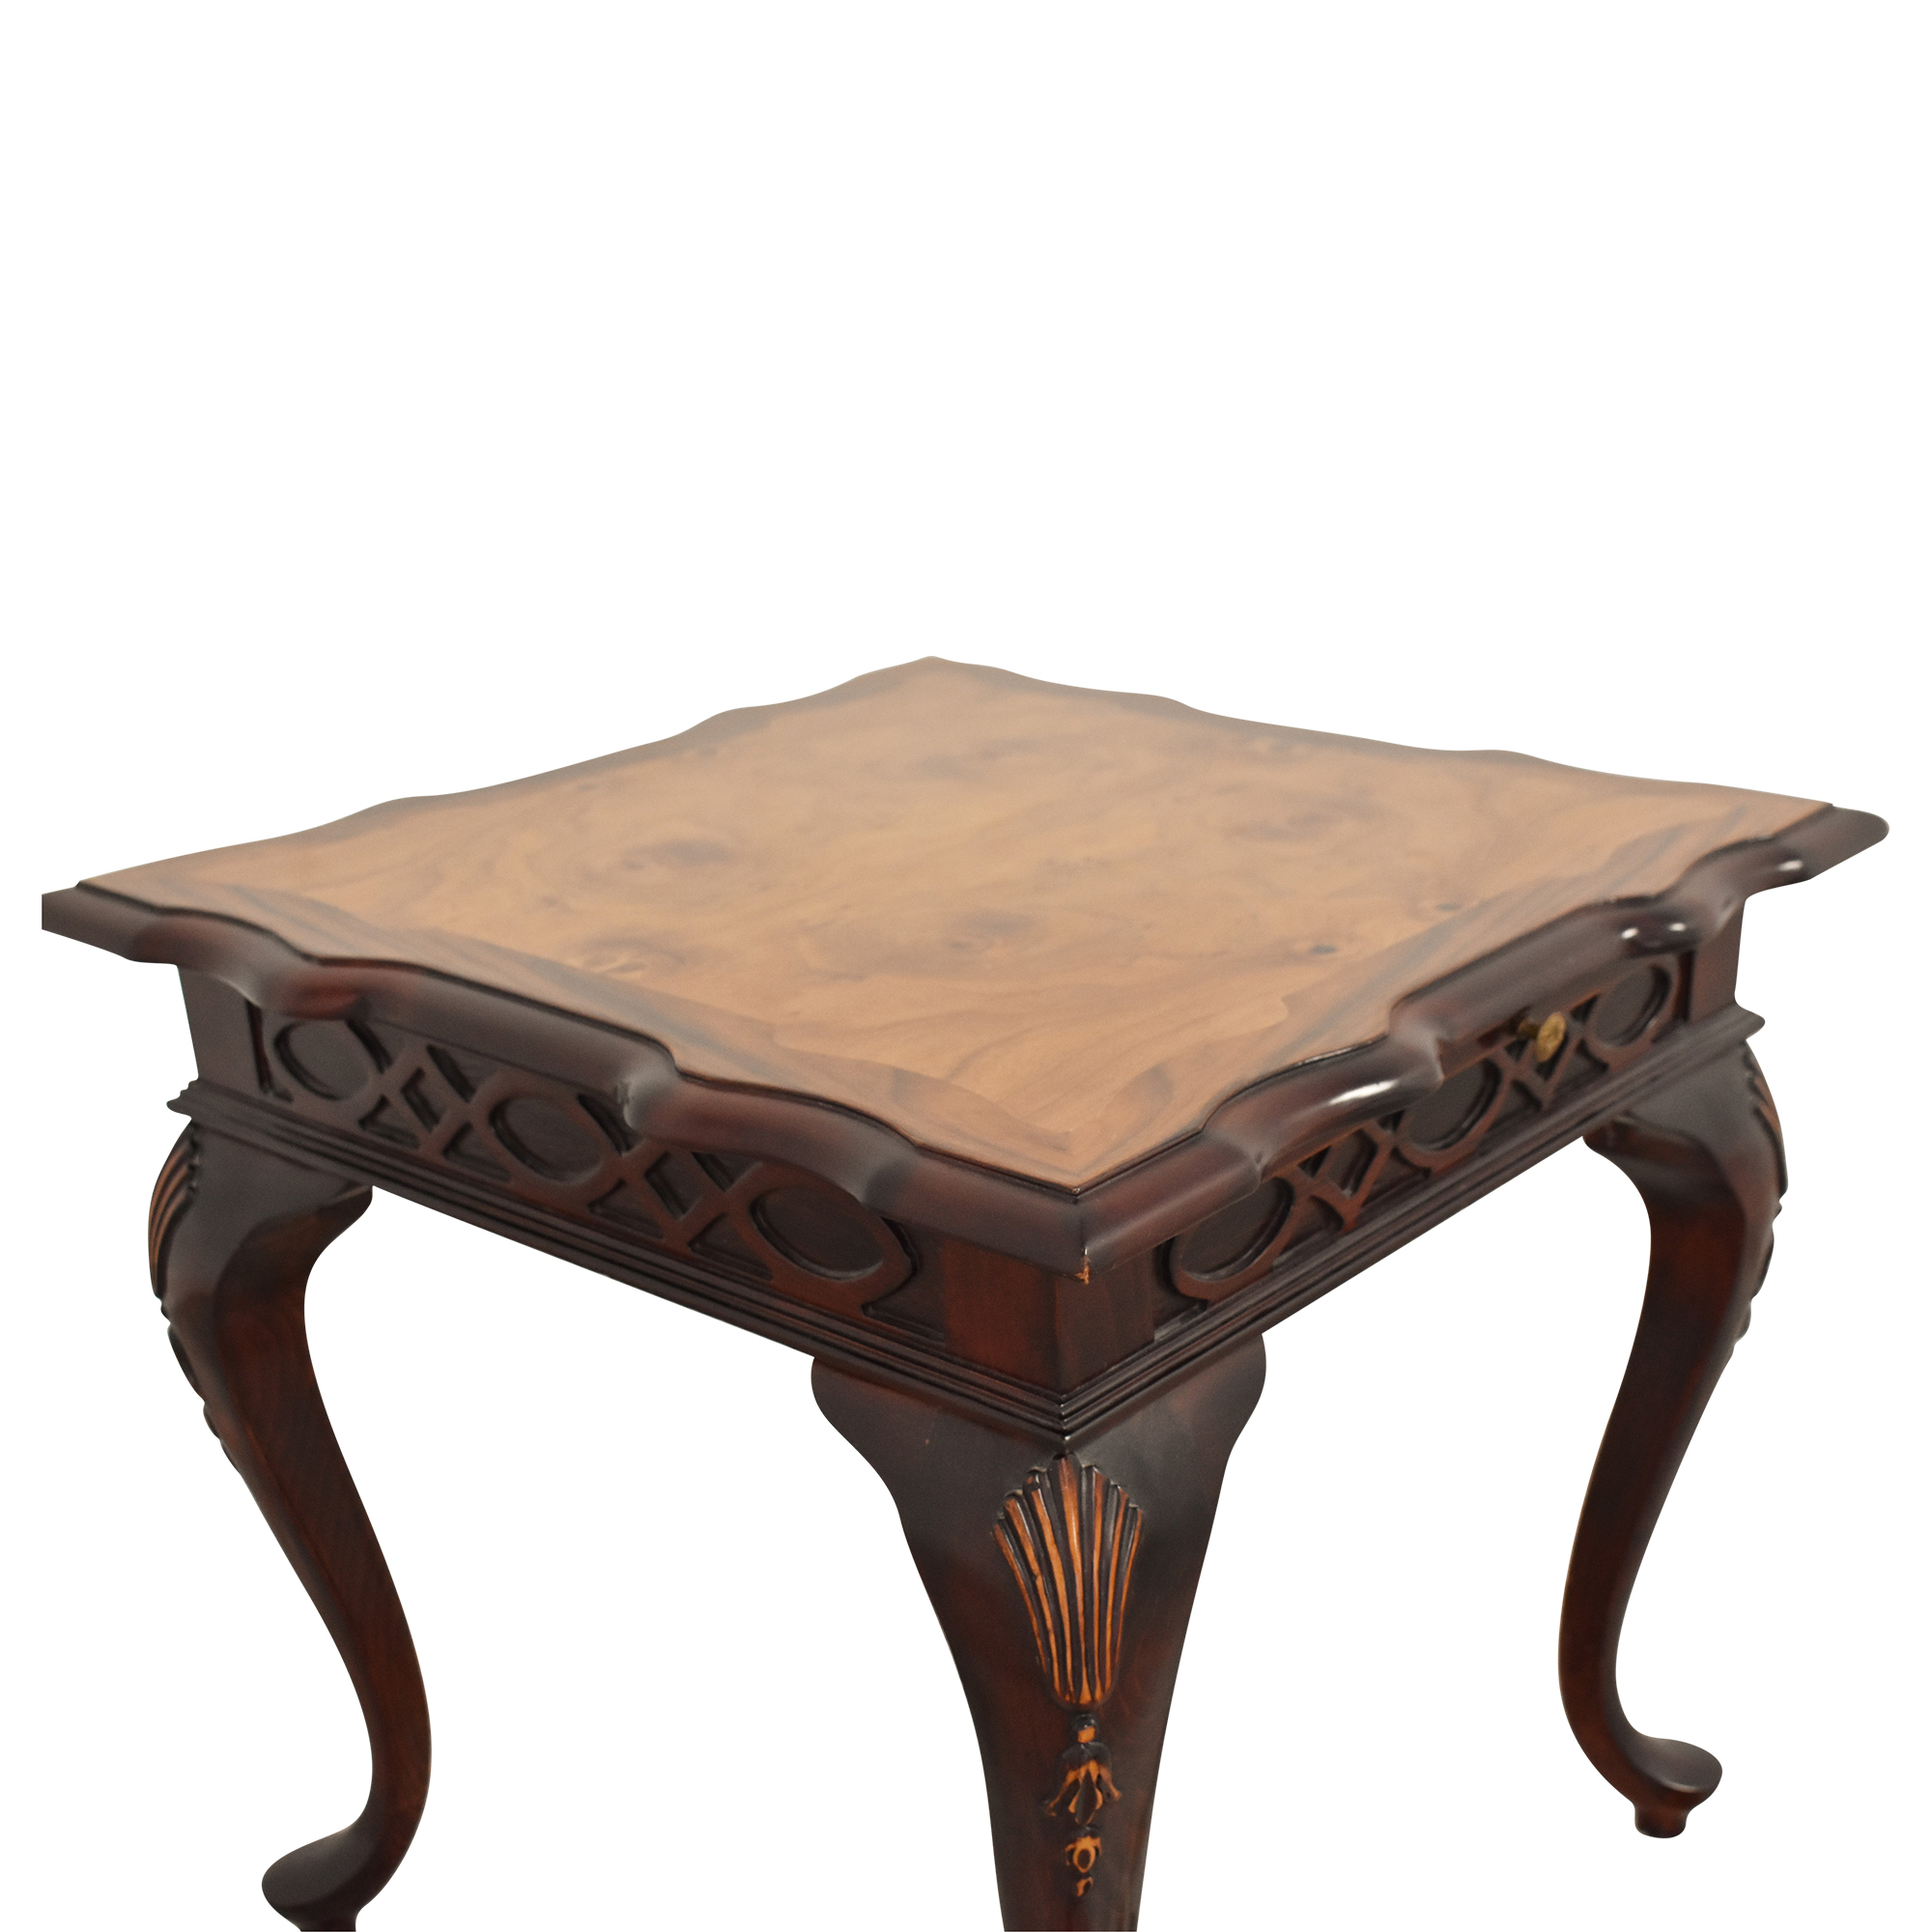 Carved End Table with Desk Extension used